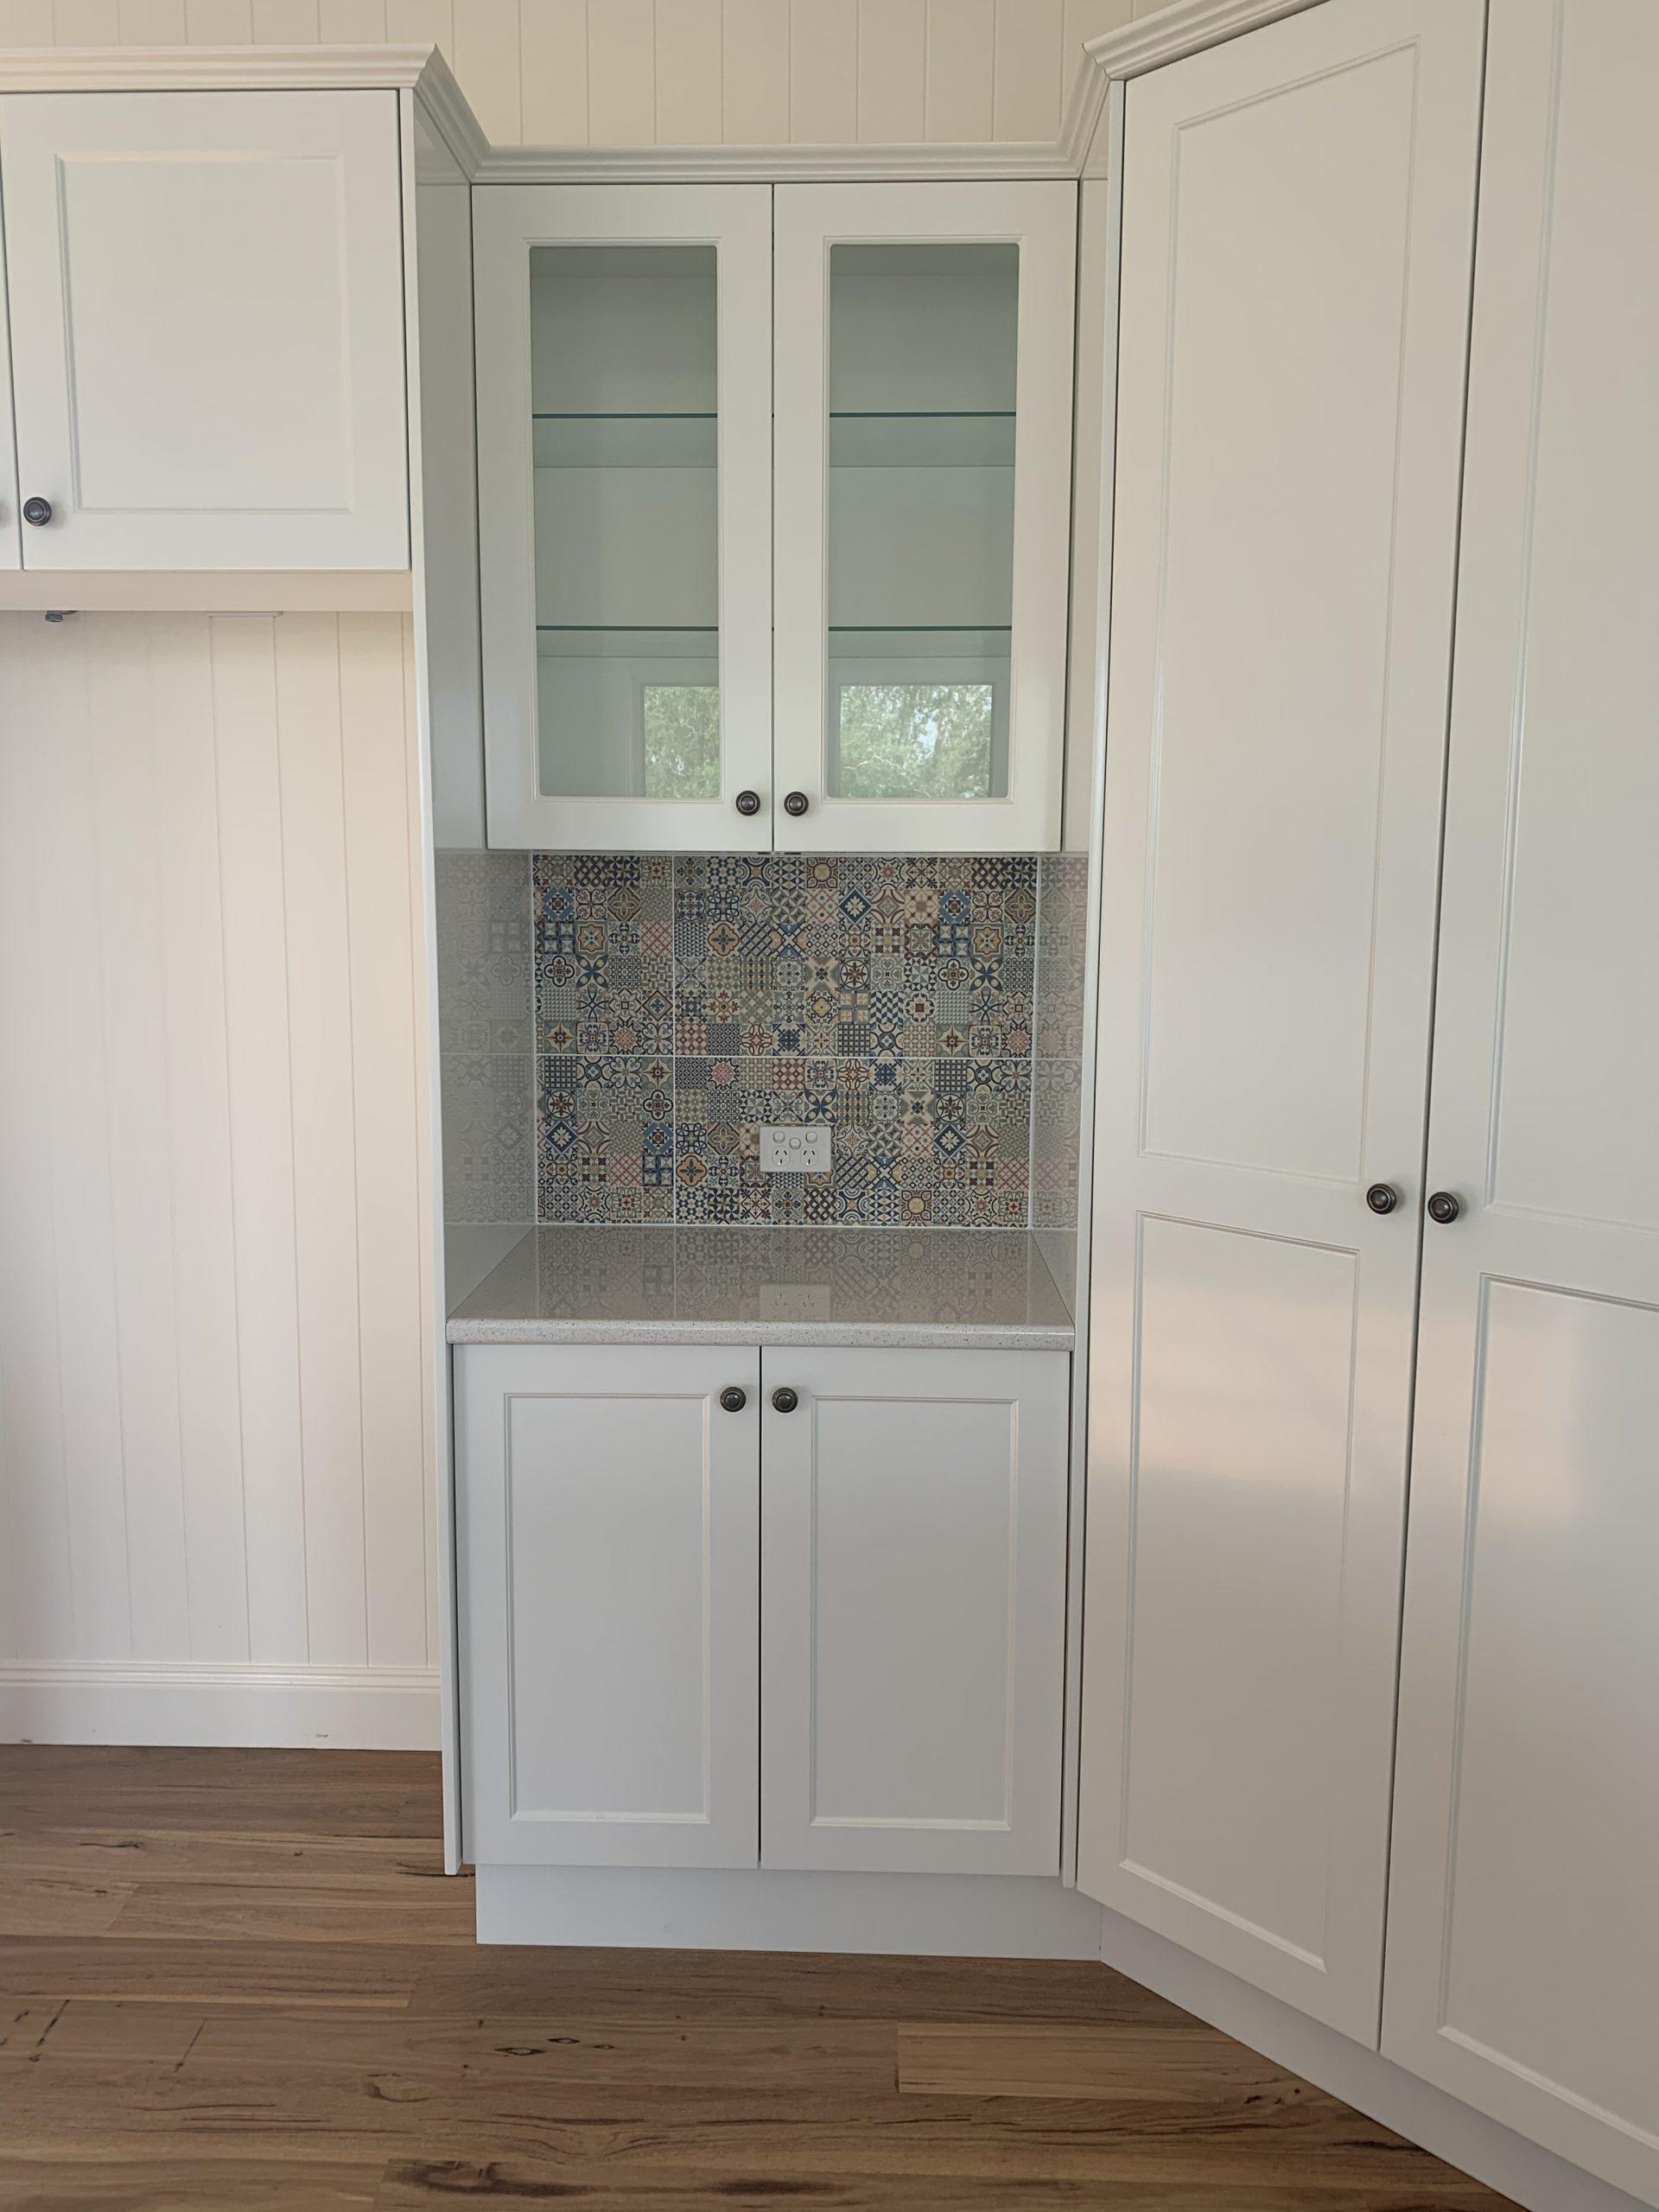 Add Wall-Mounted Storages - Gillott Constructions